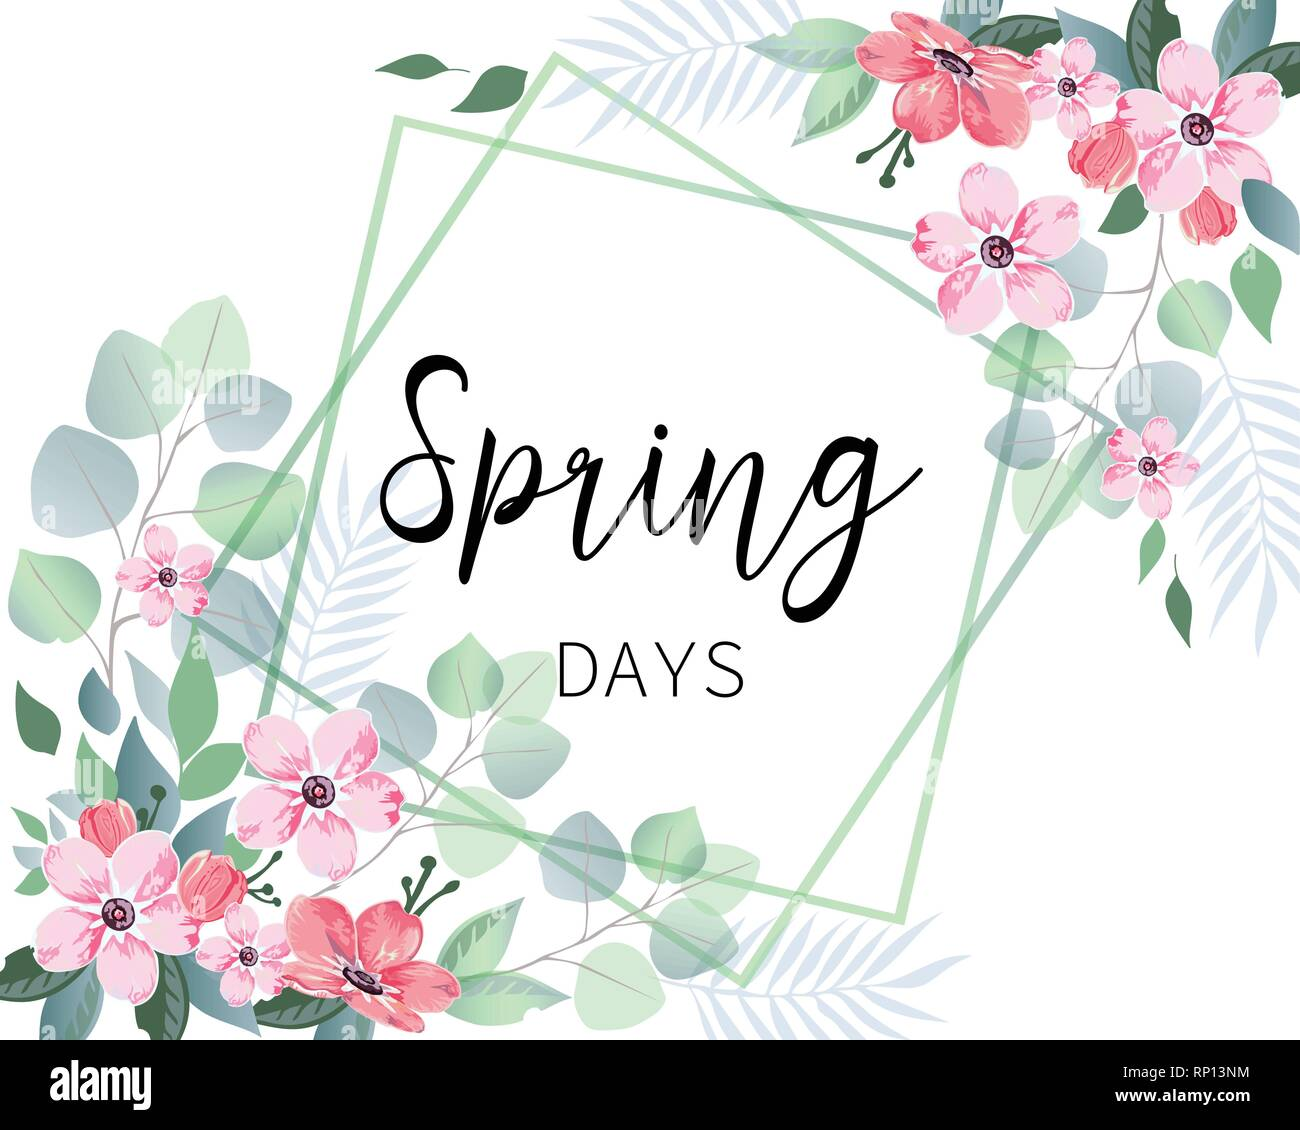 Spring sale banner with sakura flowers and eucalyptus. - Stock Vector